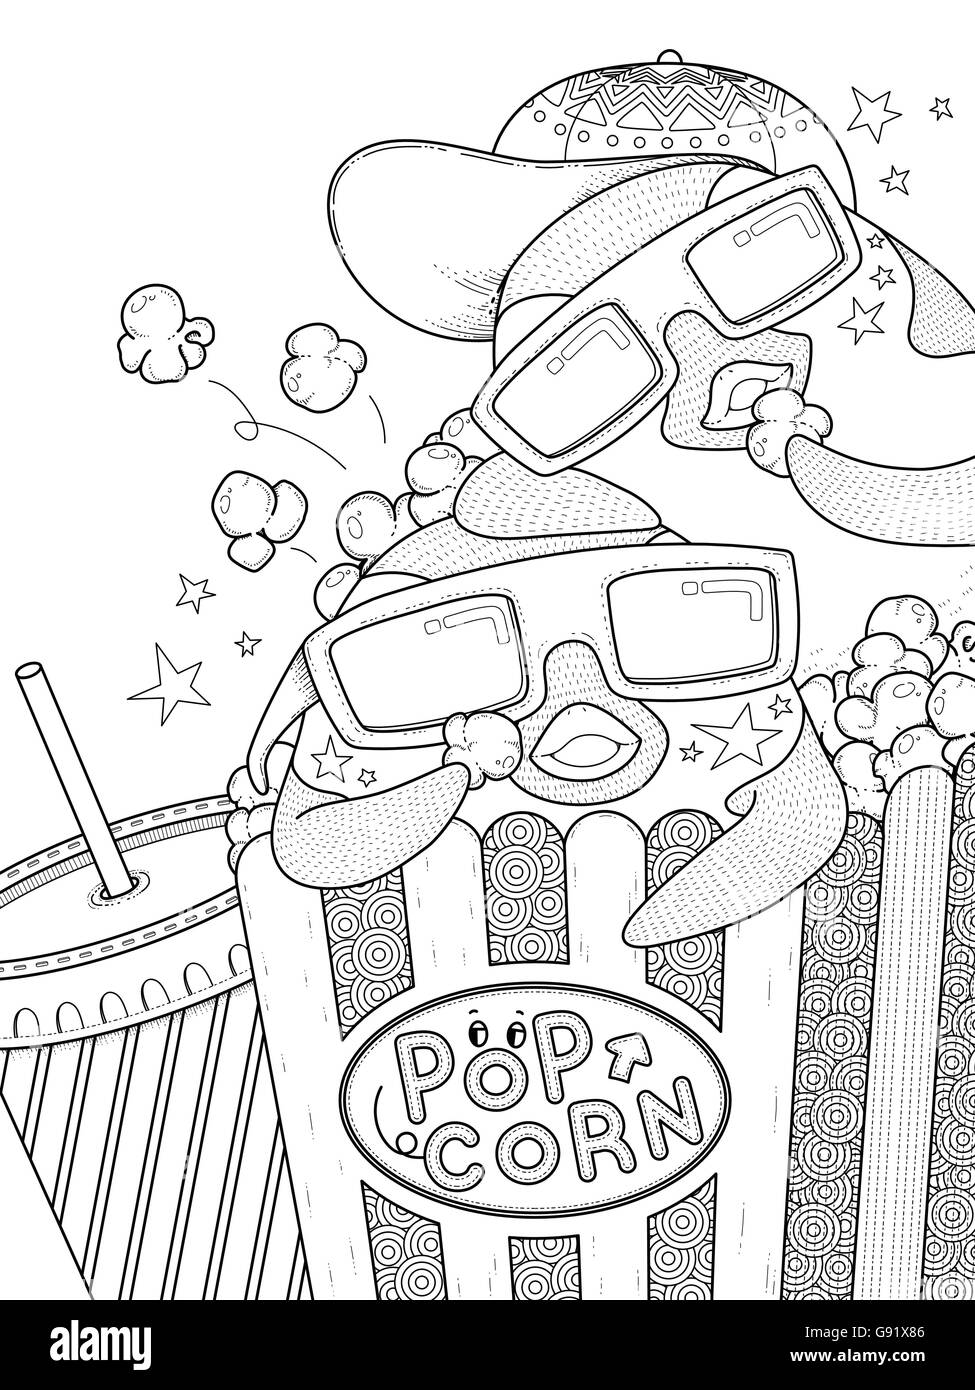 adult coloring page - funny penguin eating popcorn in the cinema ...